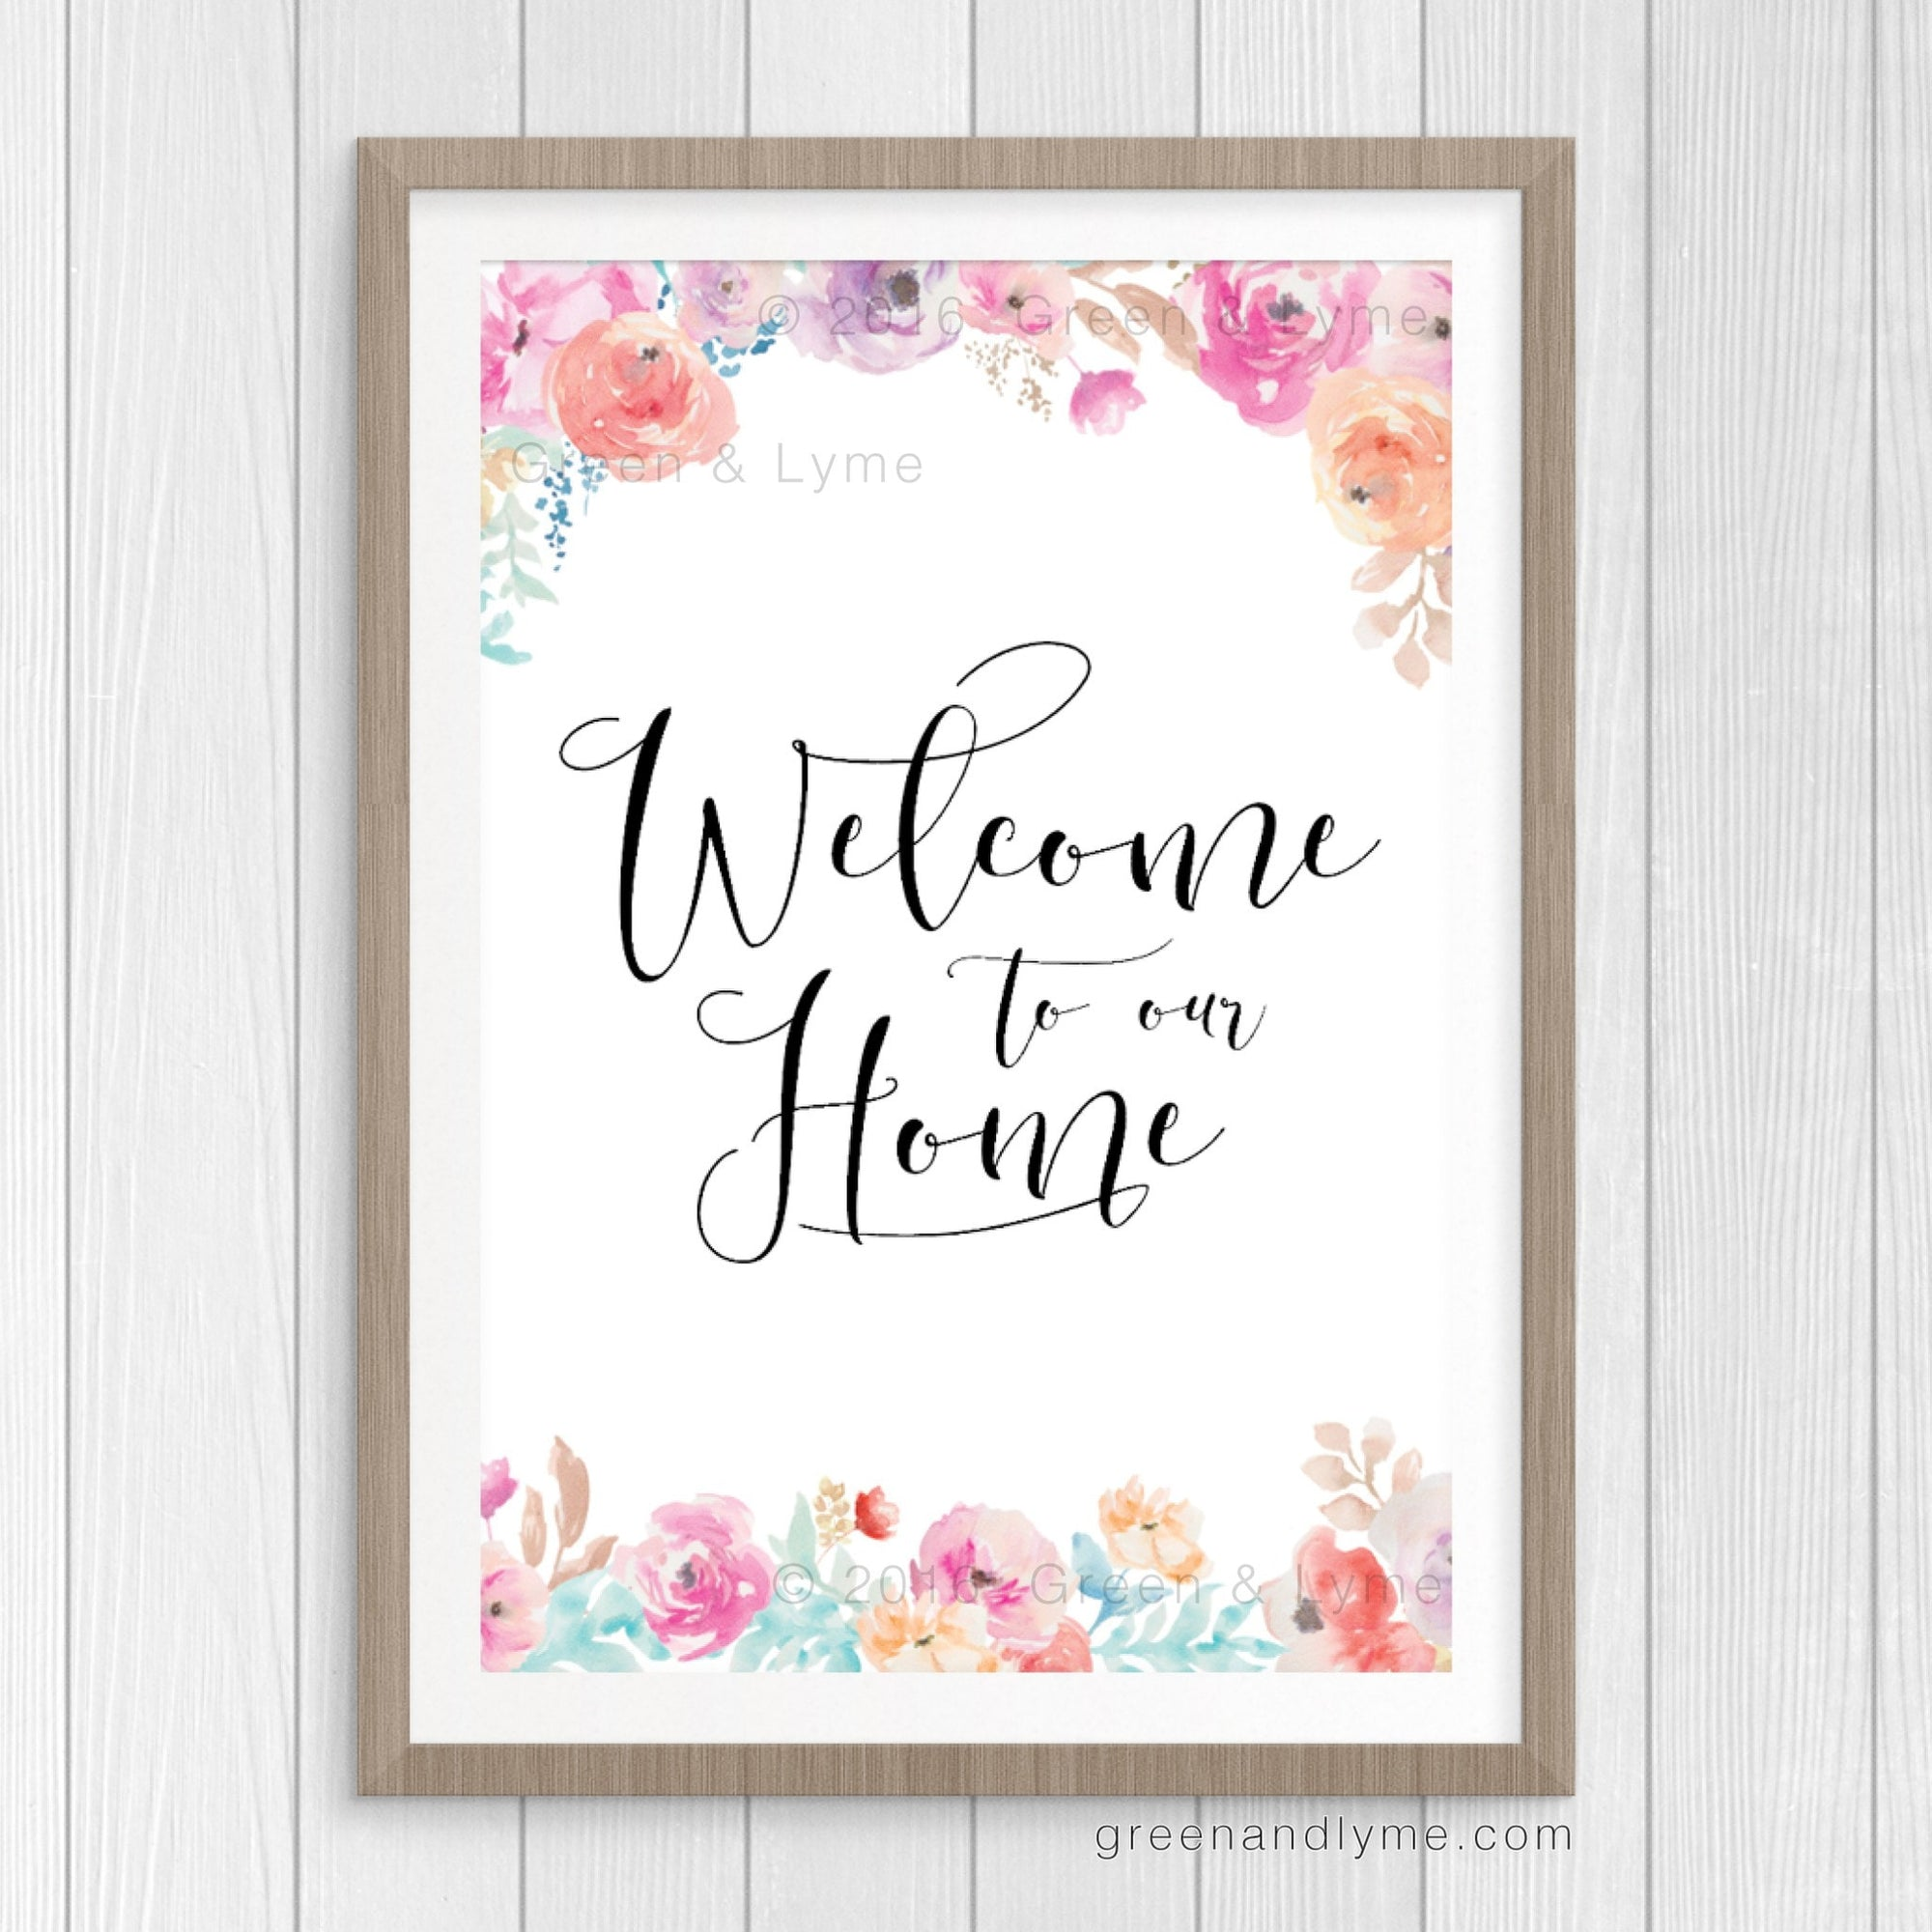 Welcome To Our Home: Printable Wall Art - Green and Lyme